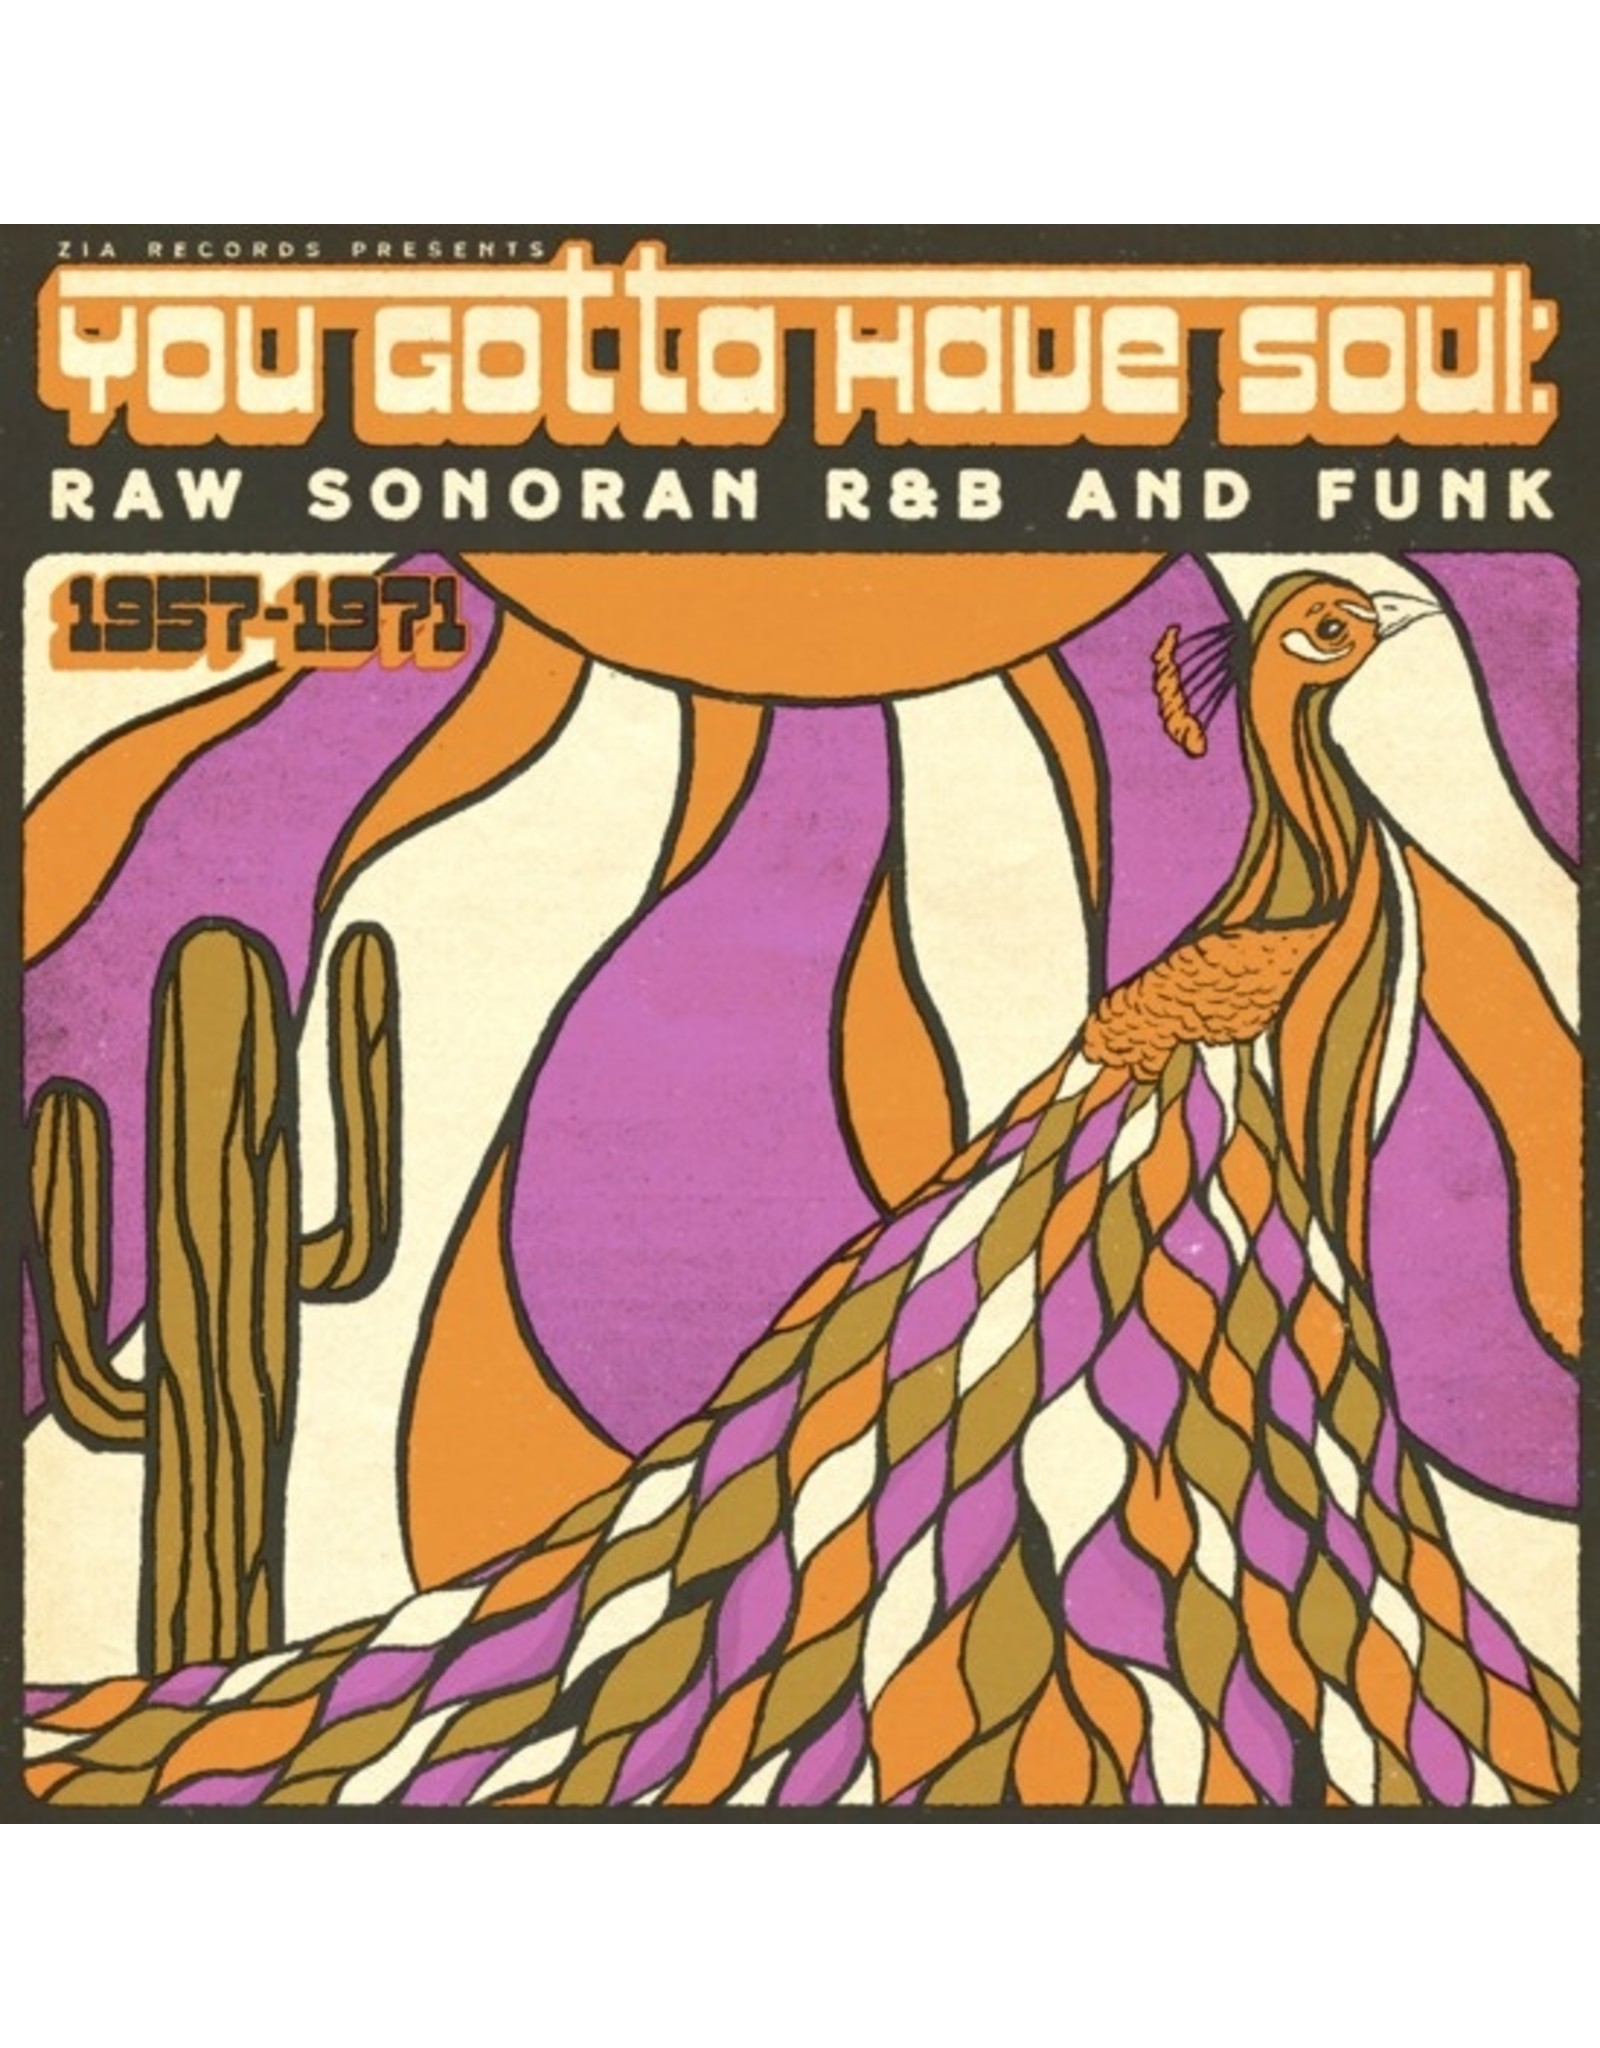 New Vinyl Various - You Gotta Have Soul: Raw Sonoran R&B And Funk 1957-1971 (Colored) LP